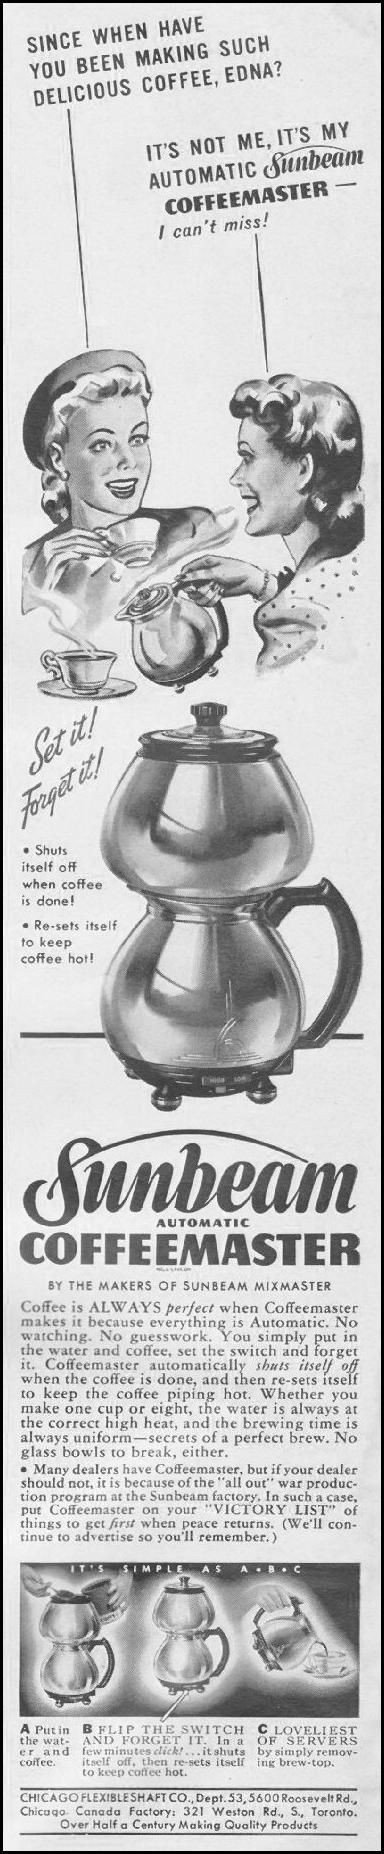 SUNBEAM AUTOMATIC COFFEEMASTER LIFE 06/22/1942 p. 4